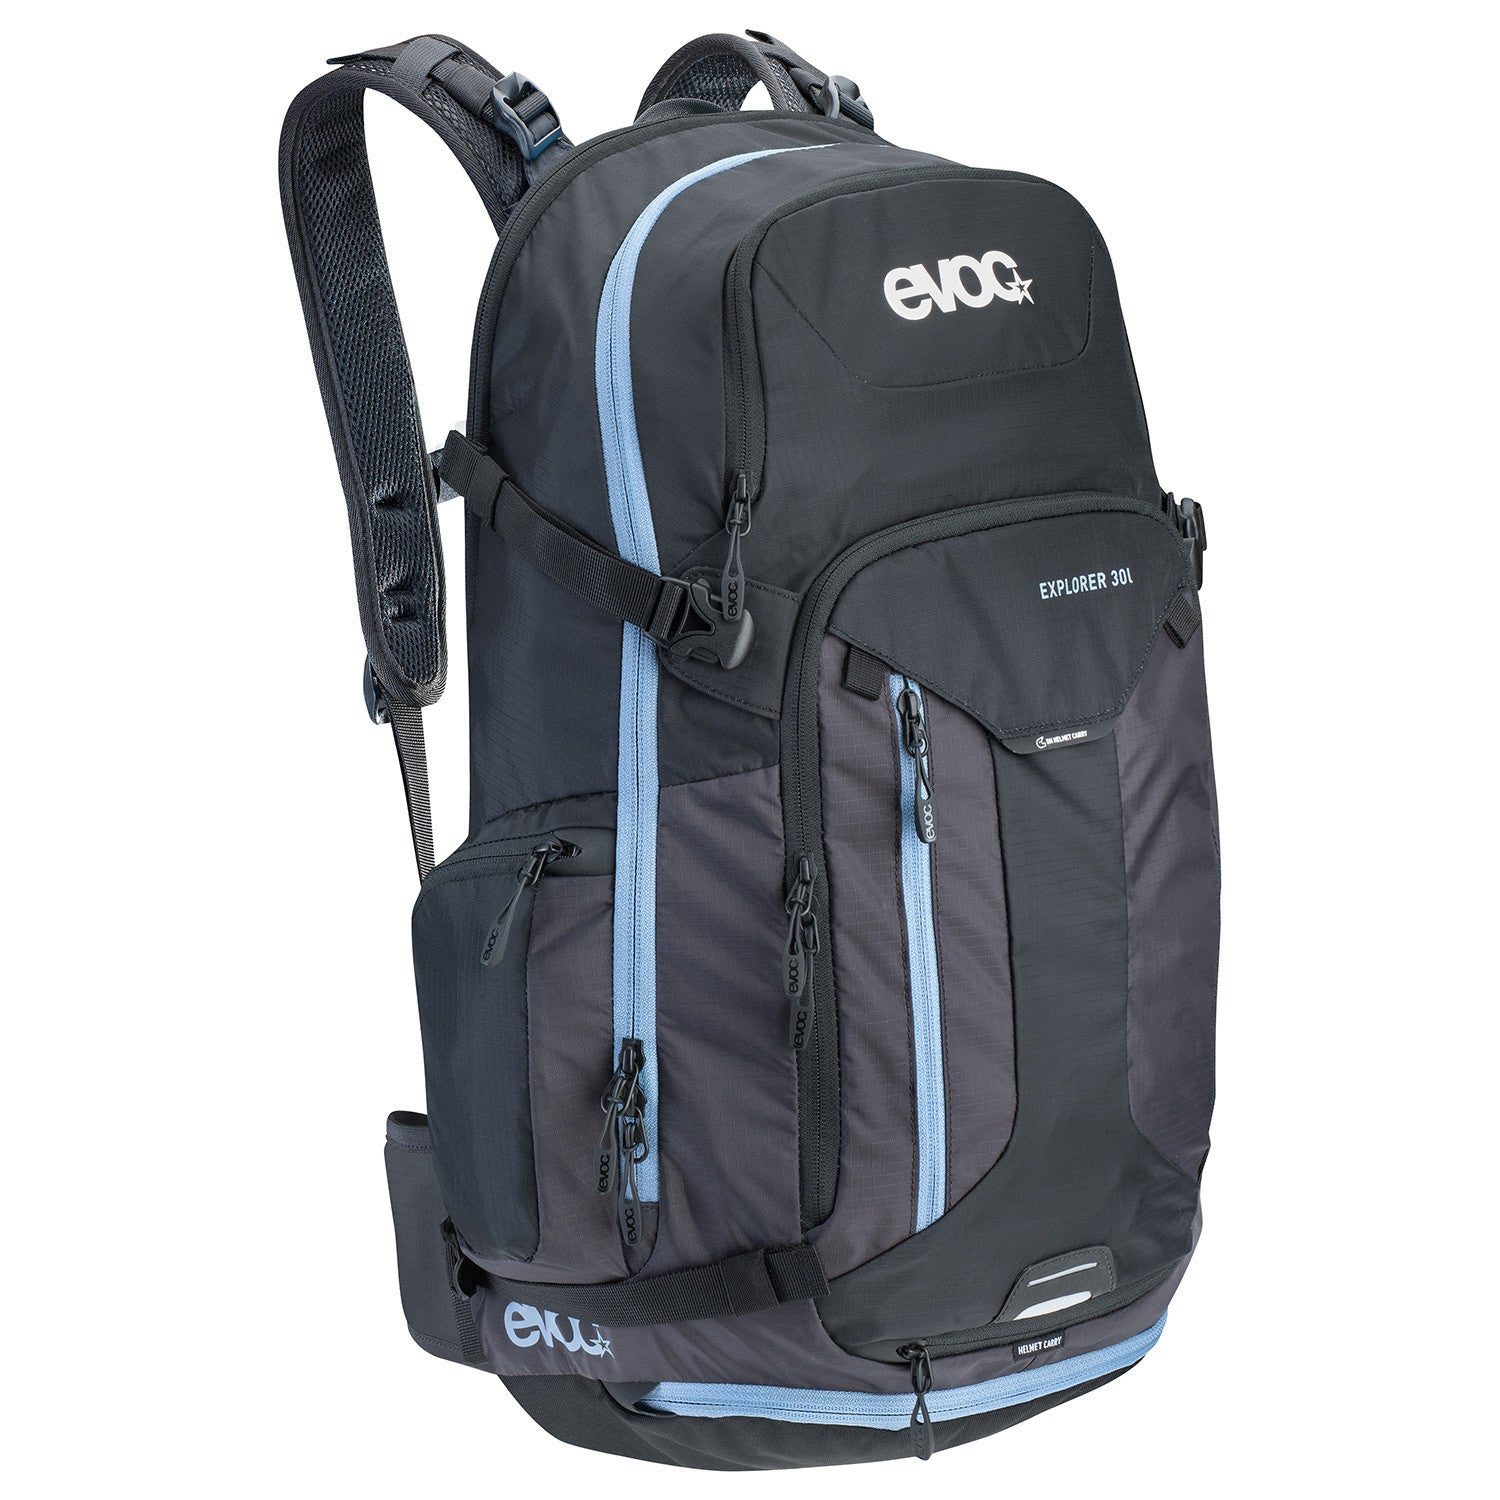 Explorer 30l - Black/Mud by EVOC